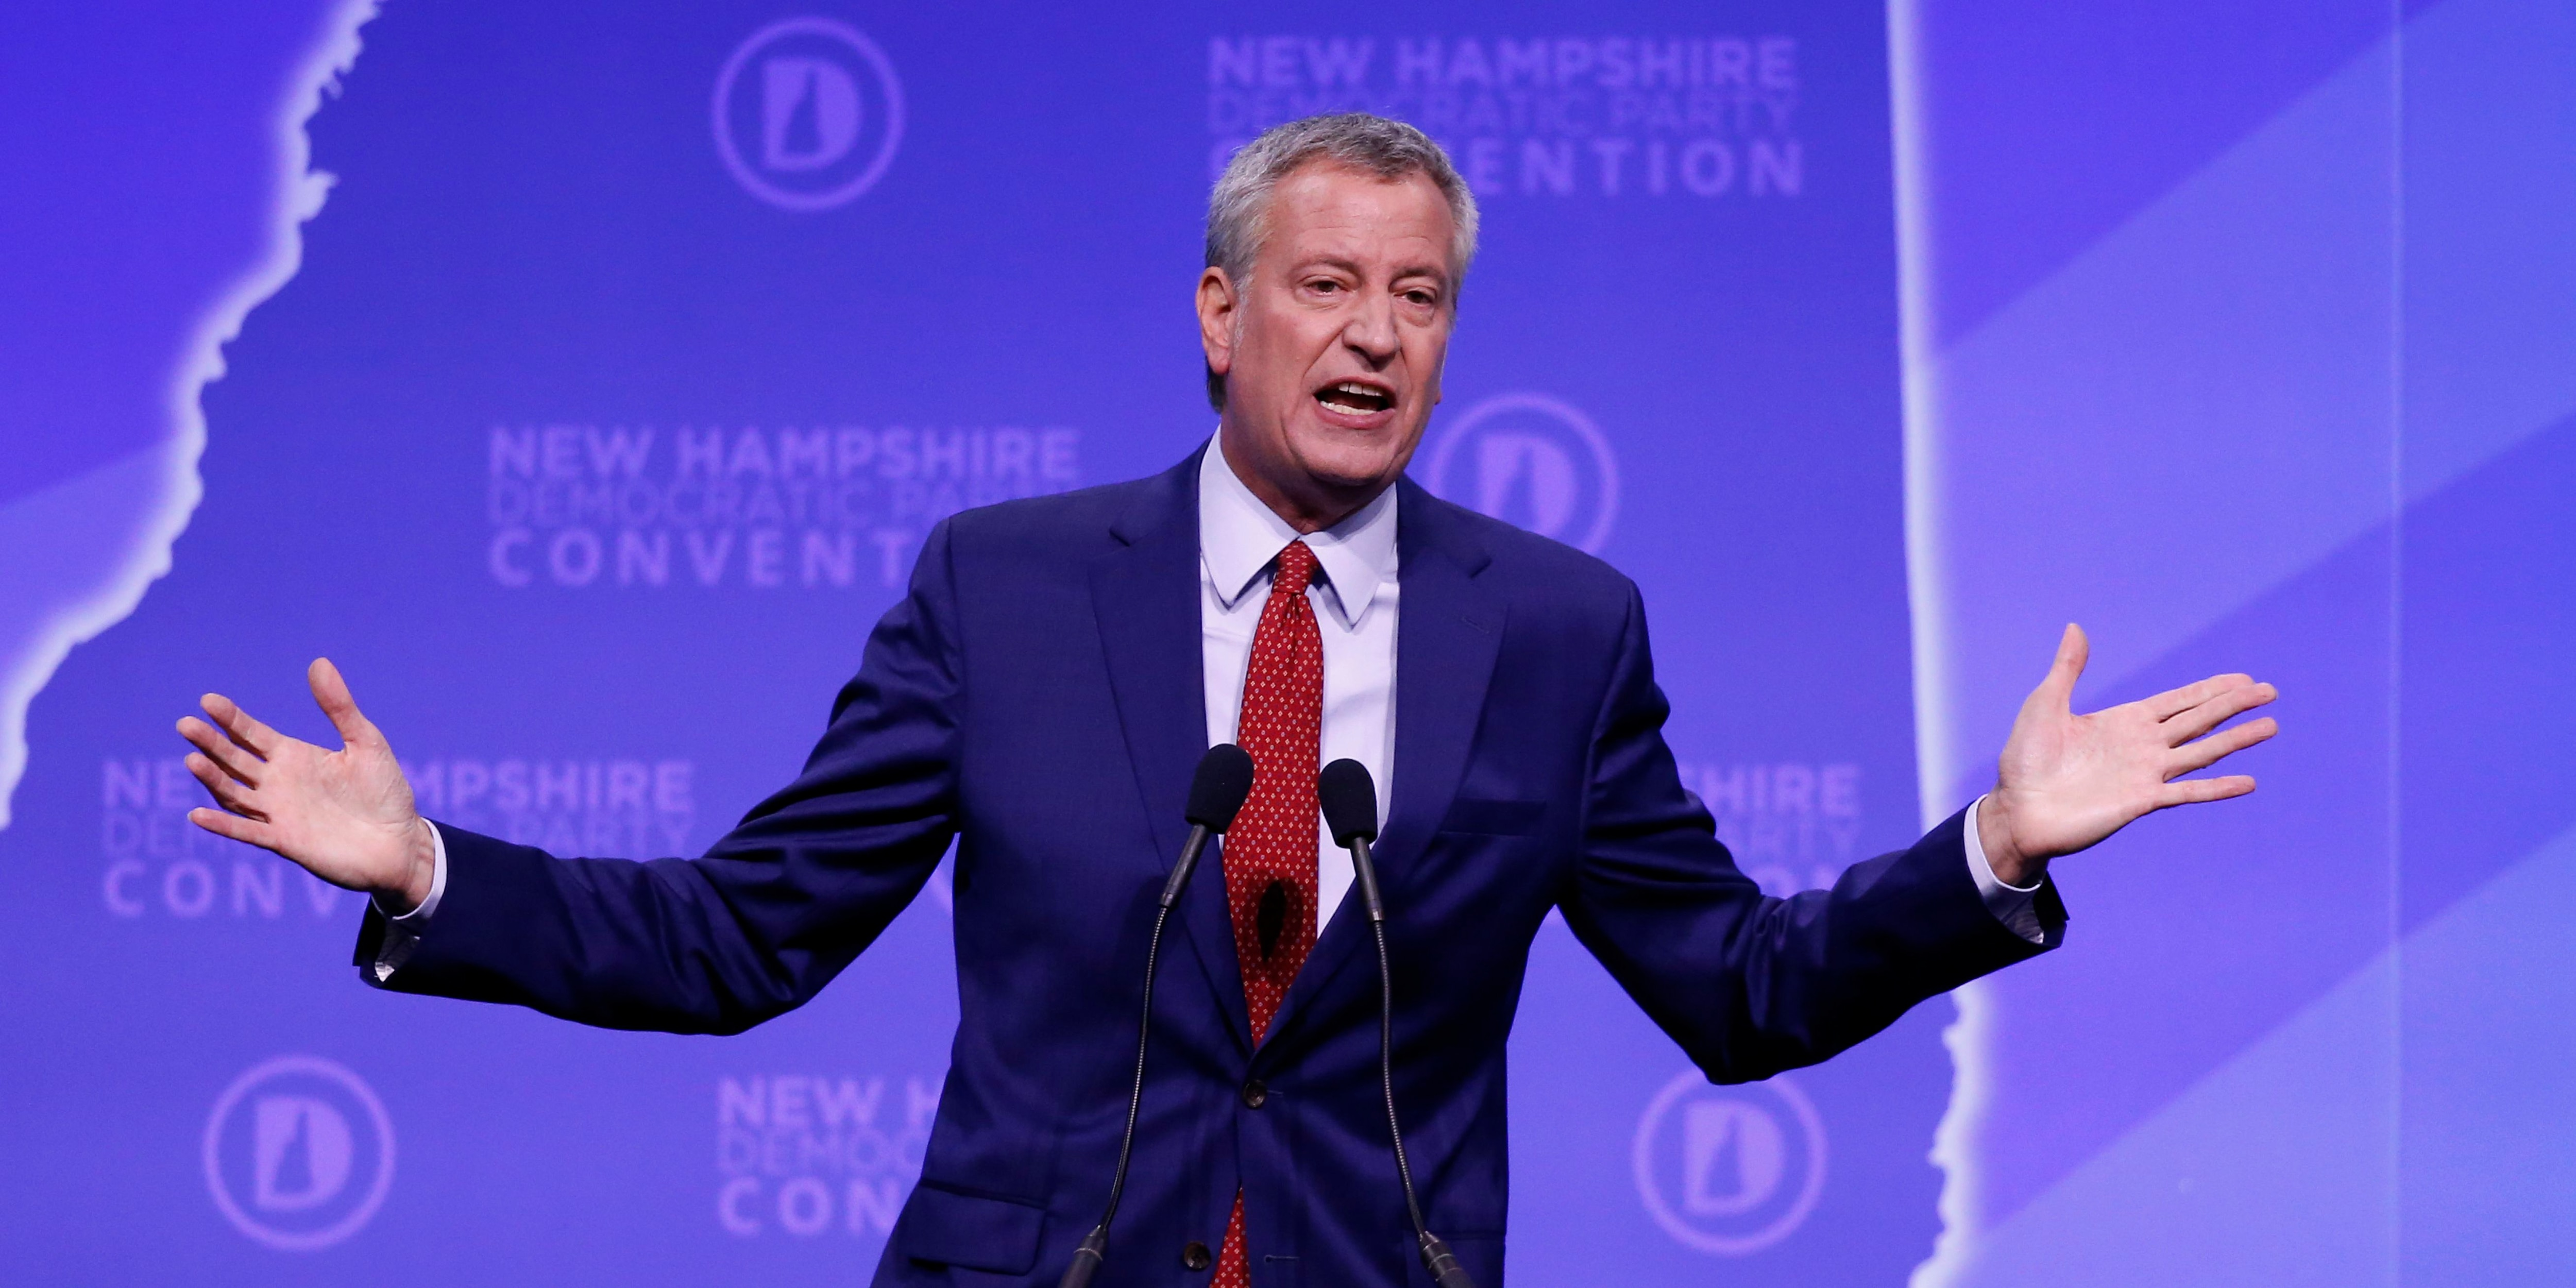 New York Mayor Bill de Blasio drops 2020 presidential bid